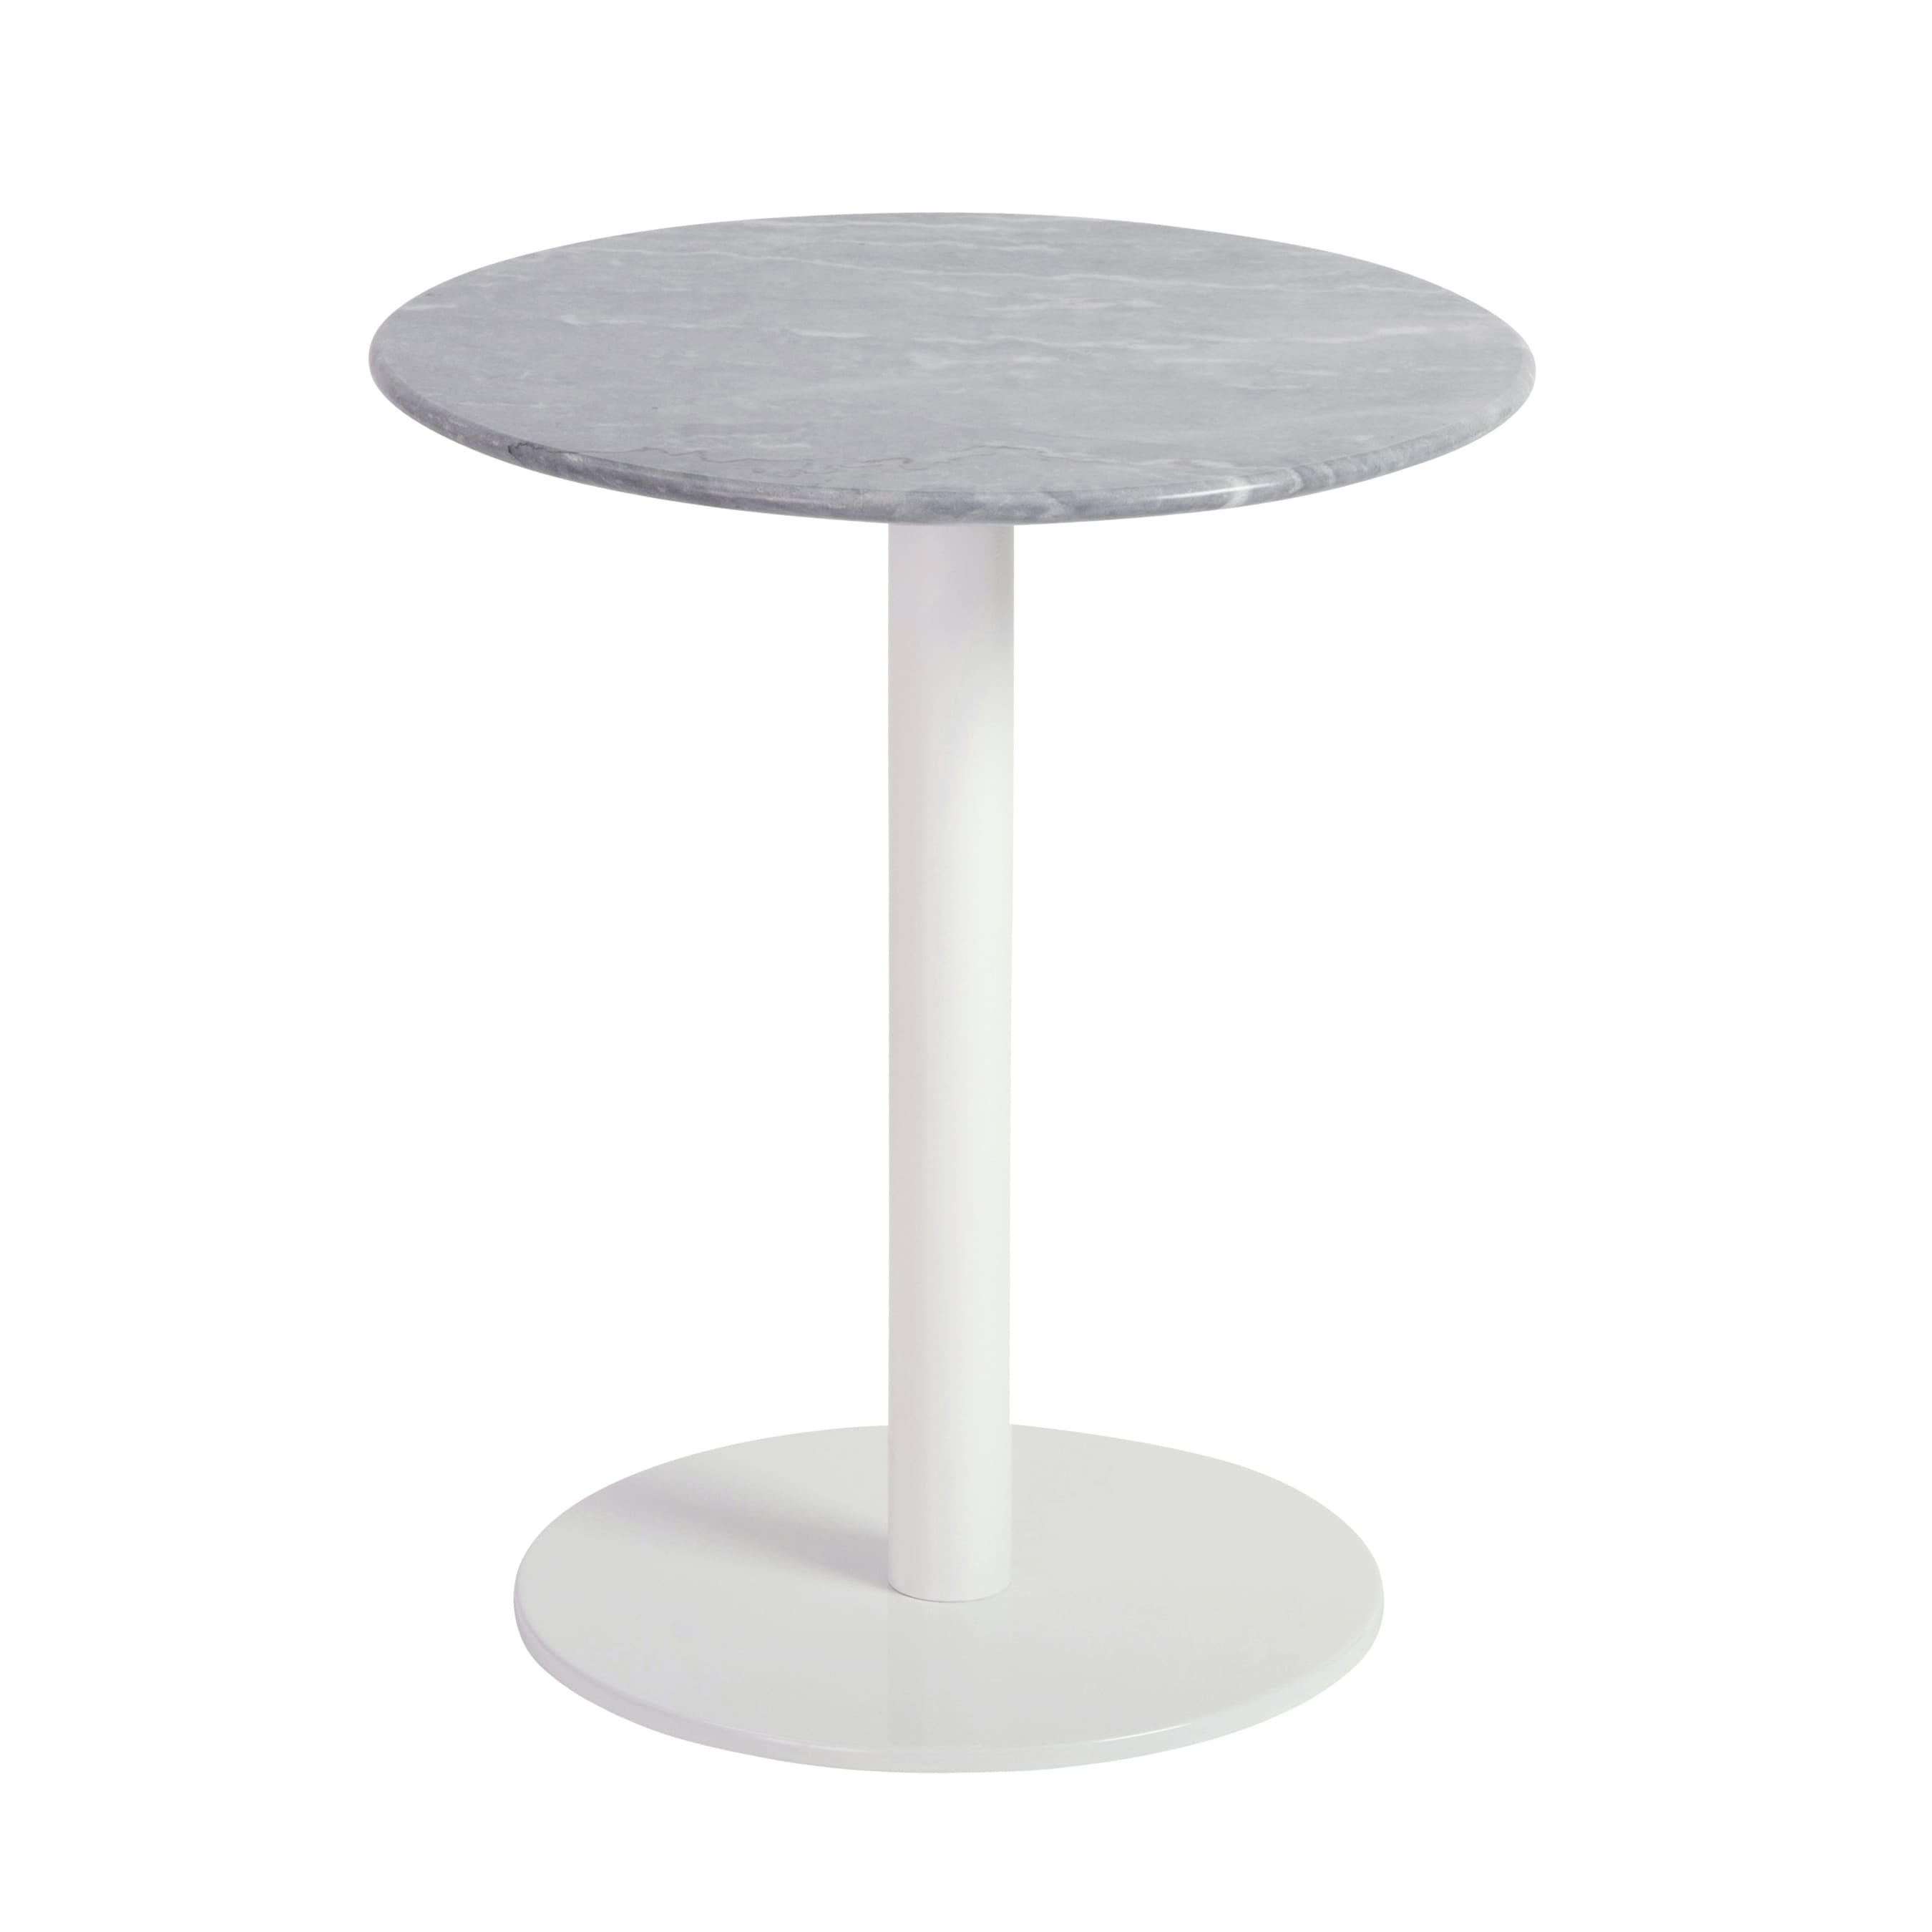 Shop tammy powder coated white base grey marble steel round side table free shipping today overstock com 12991502